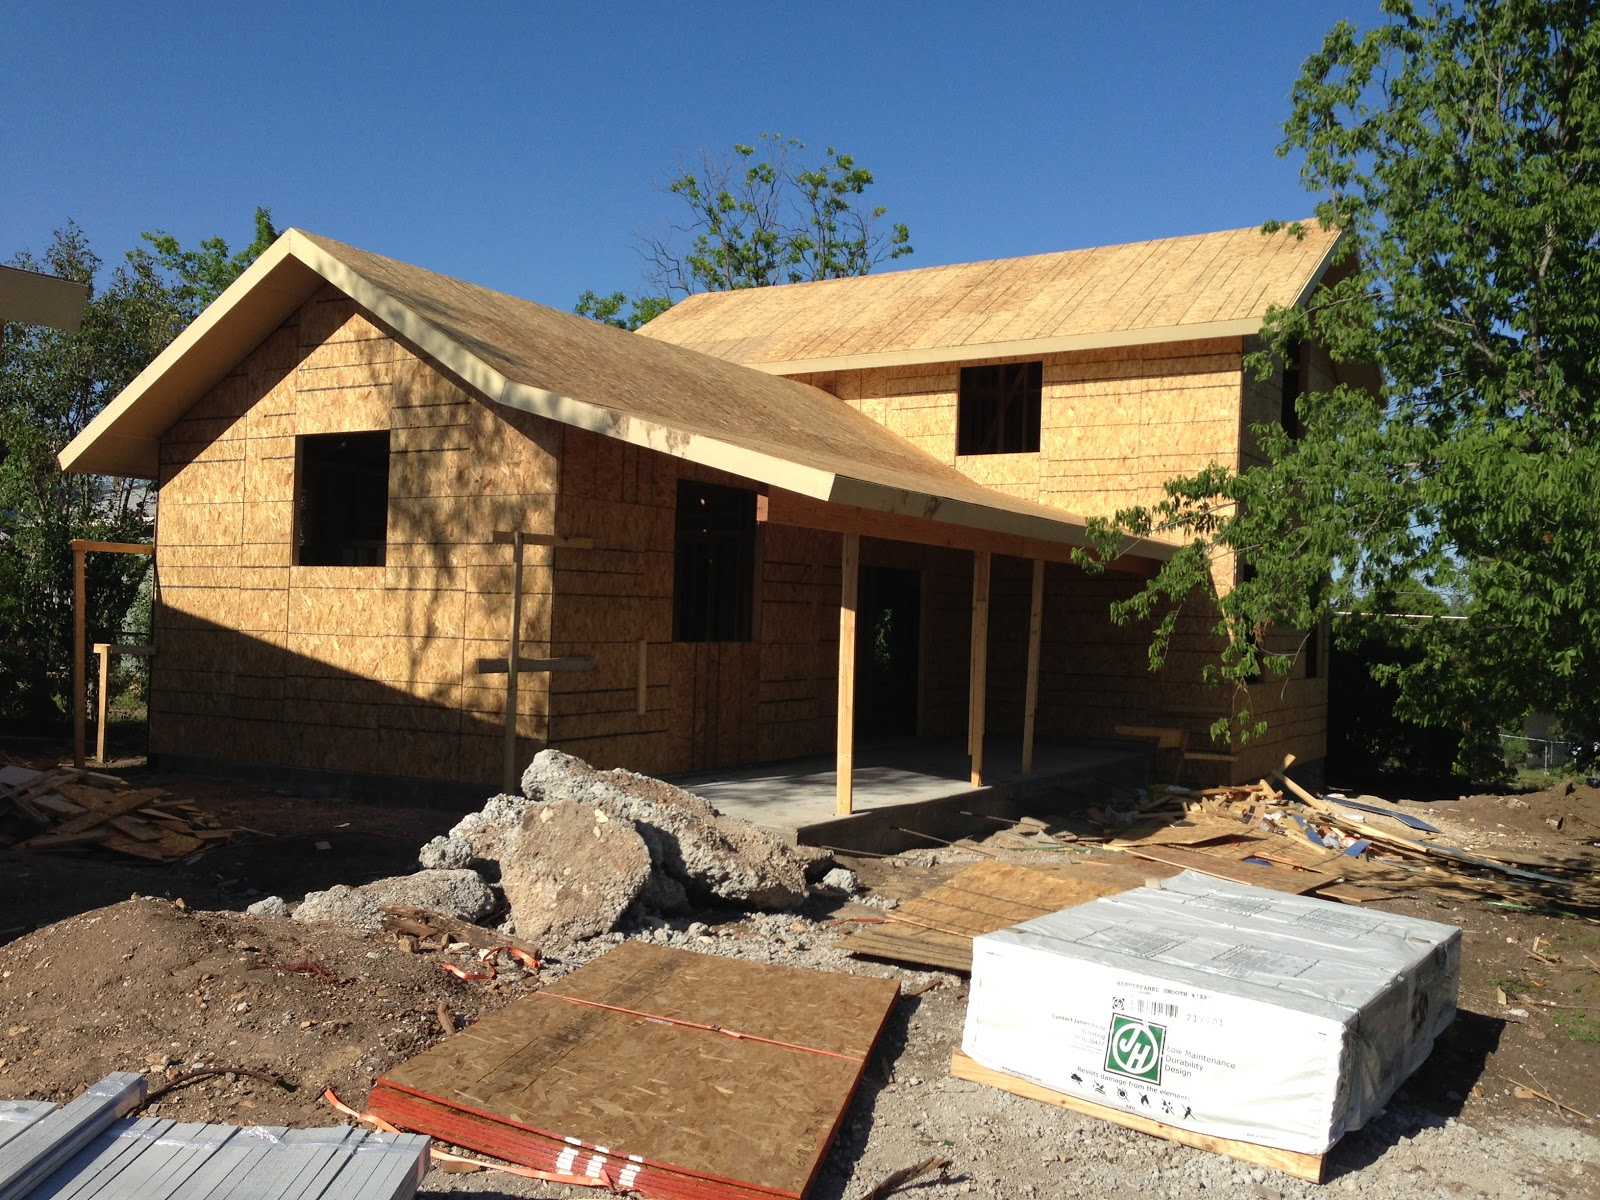 This New House: Plywood Sheathing & Exterior Colors